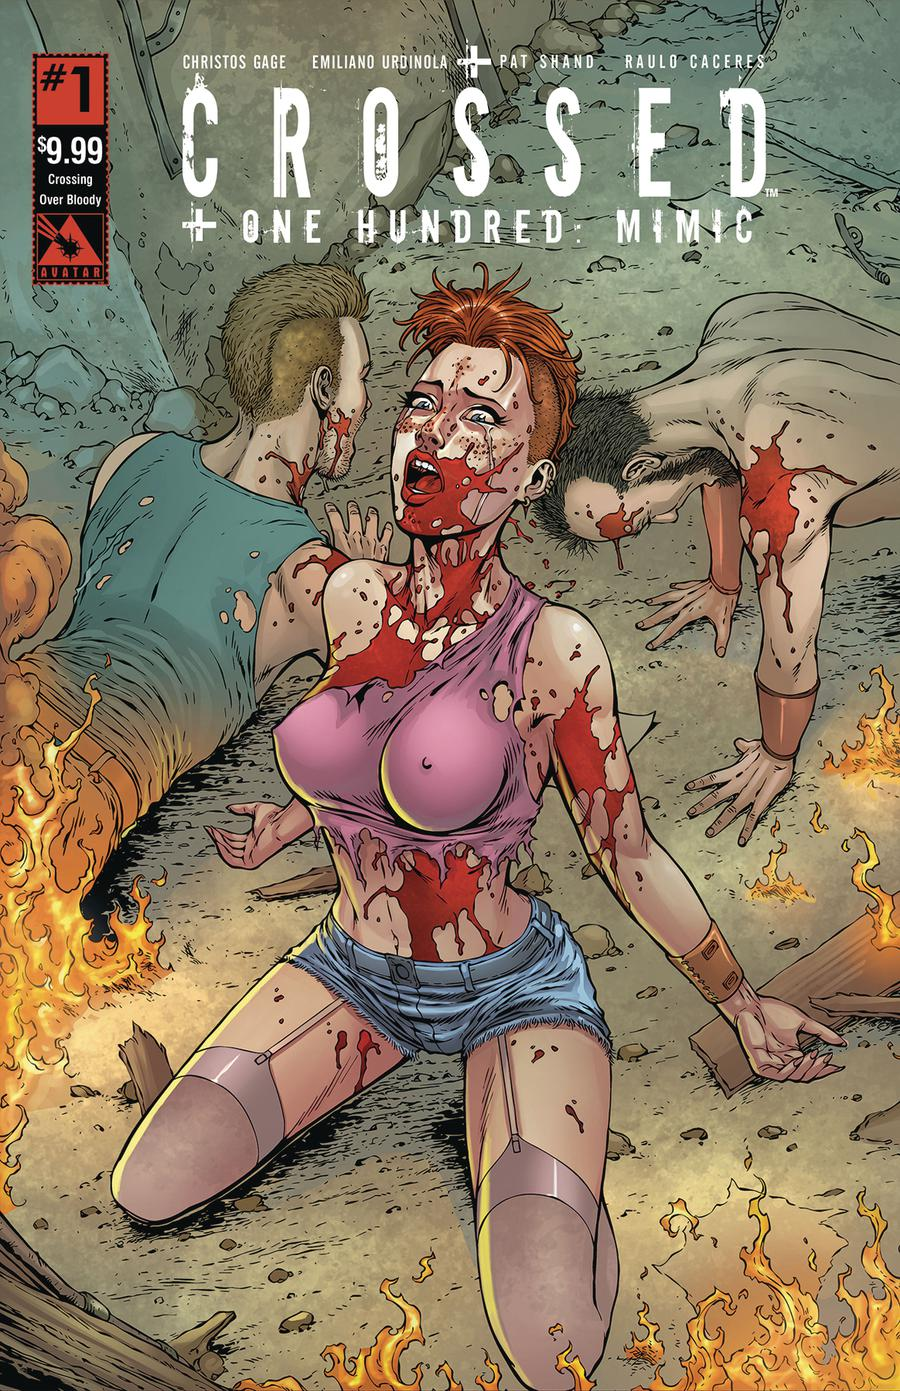 Crossed Plus 100 Mimic #1 Cover I Crossing Over Bloody Cover